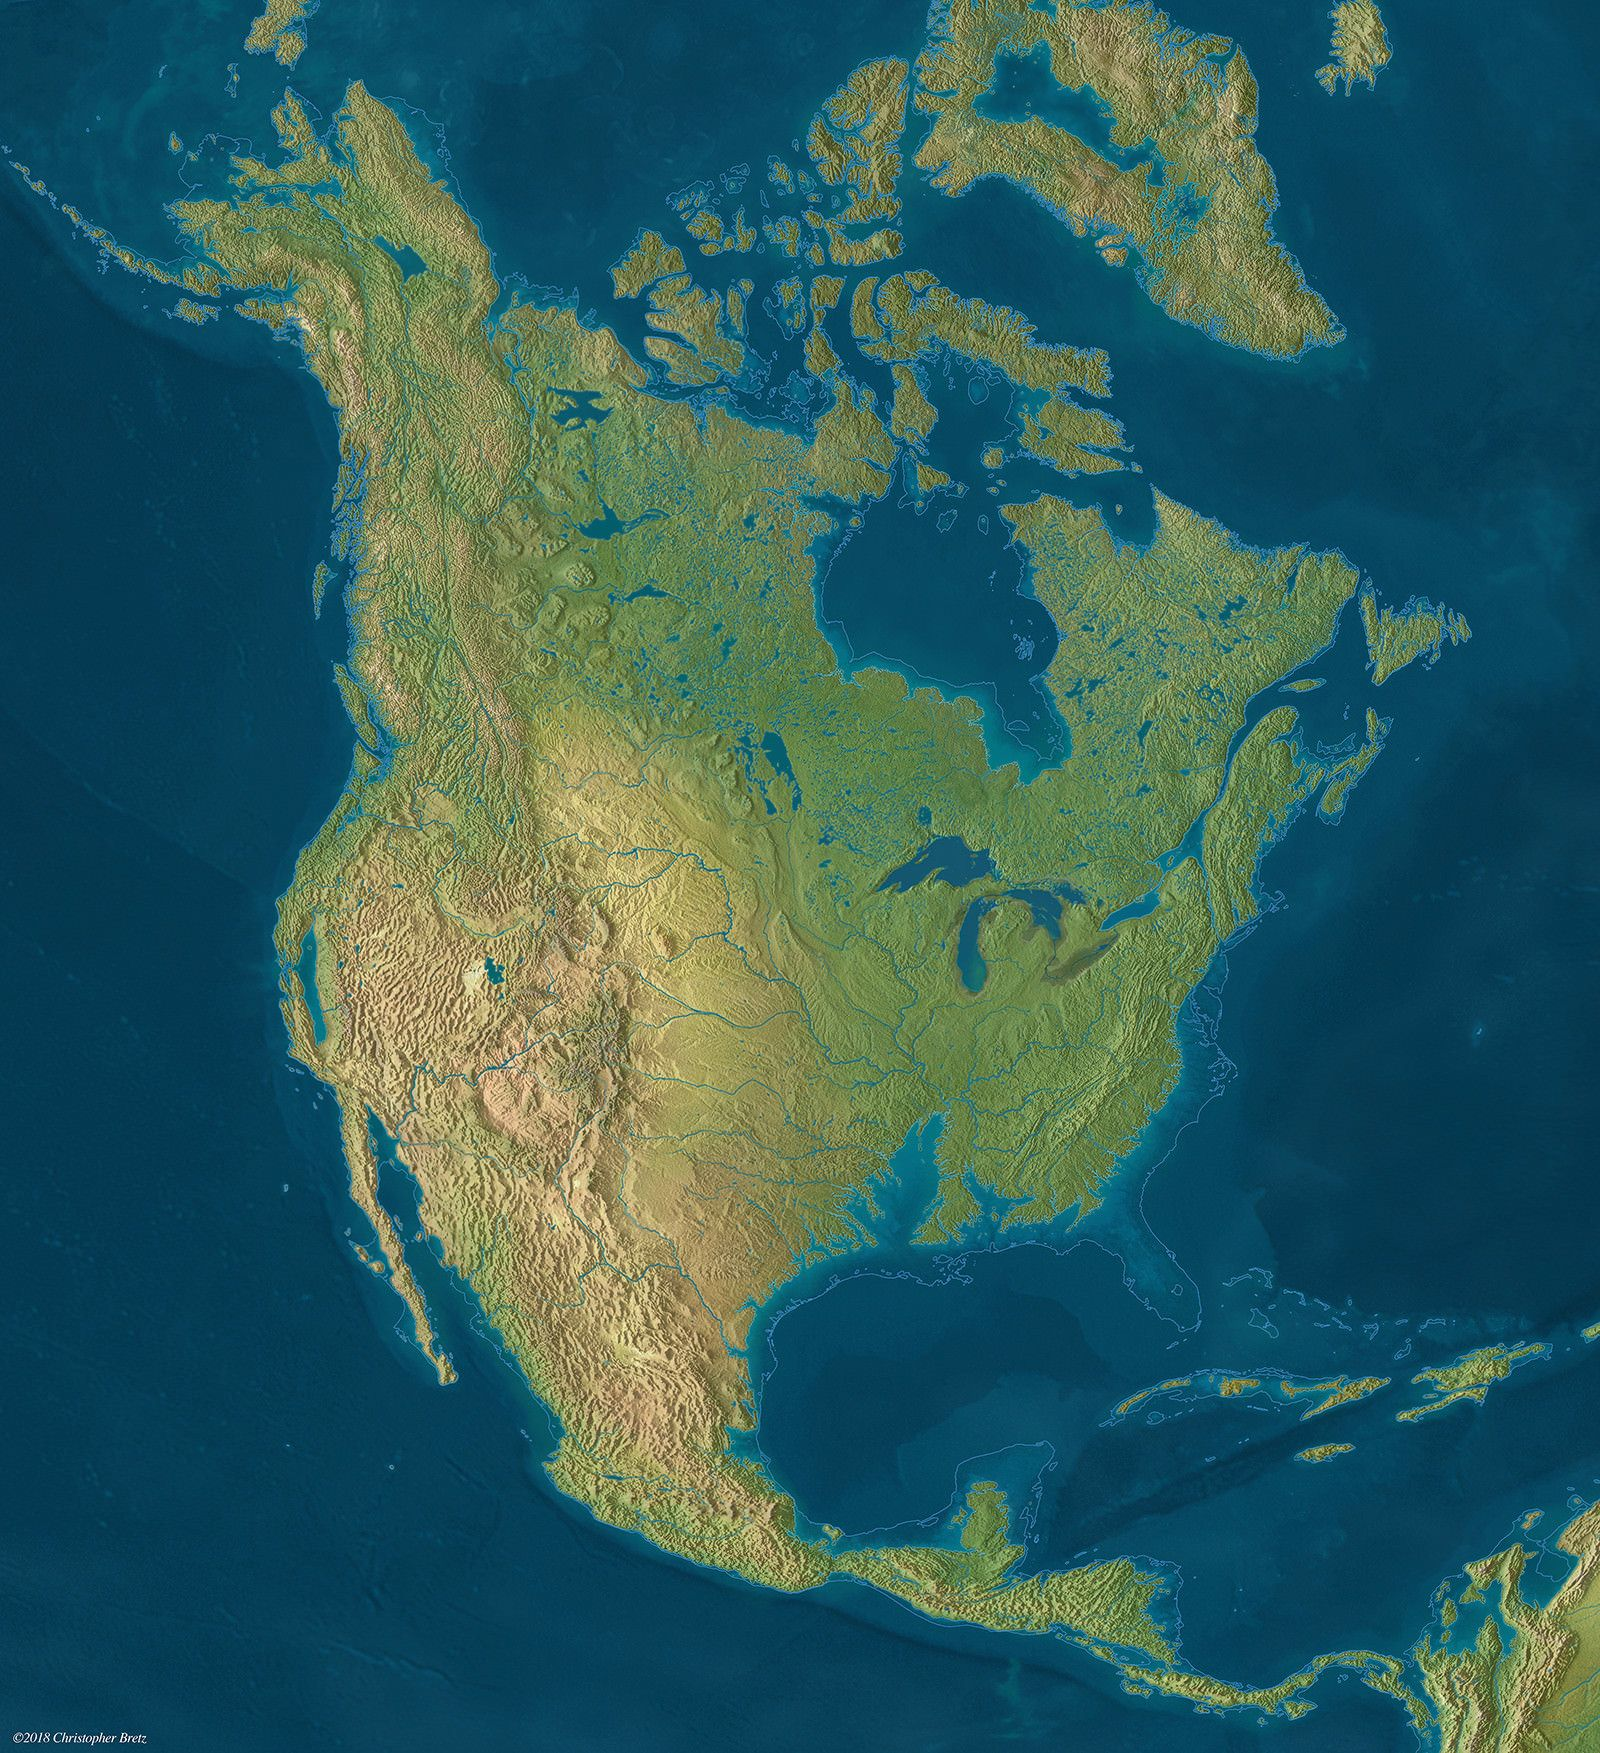 North America Sea Level Rise If All The Ice On The Land Melts